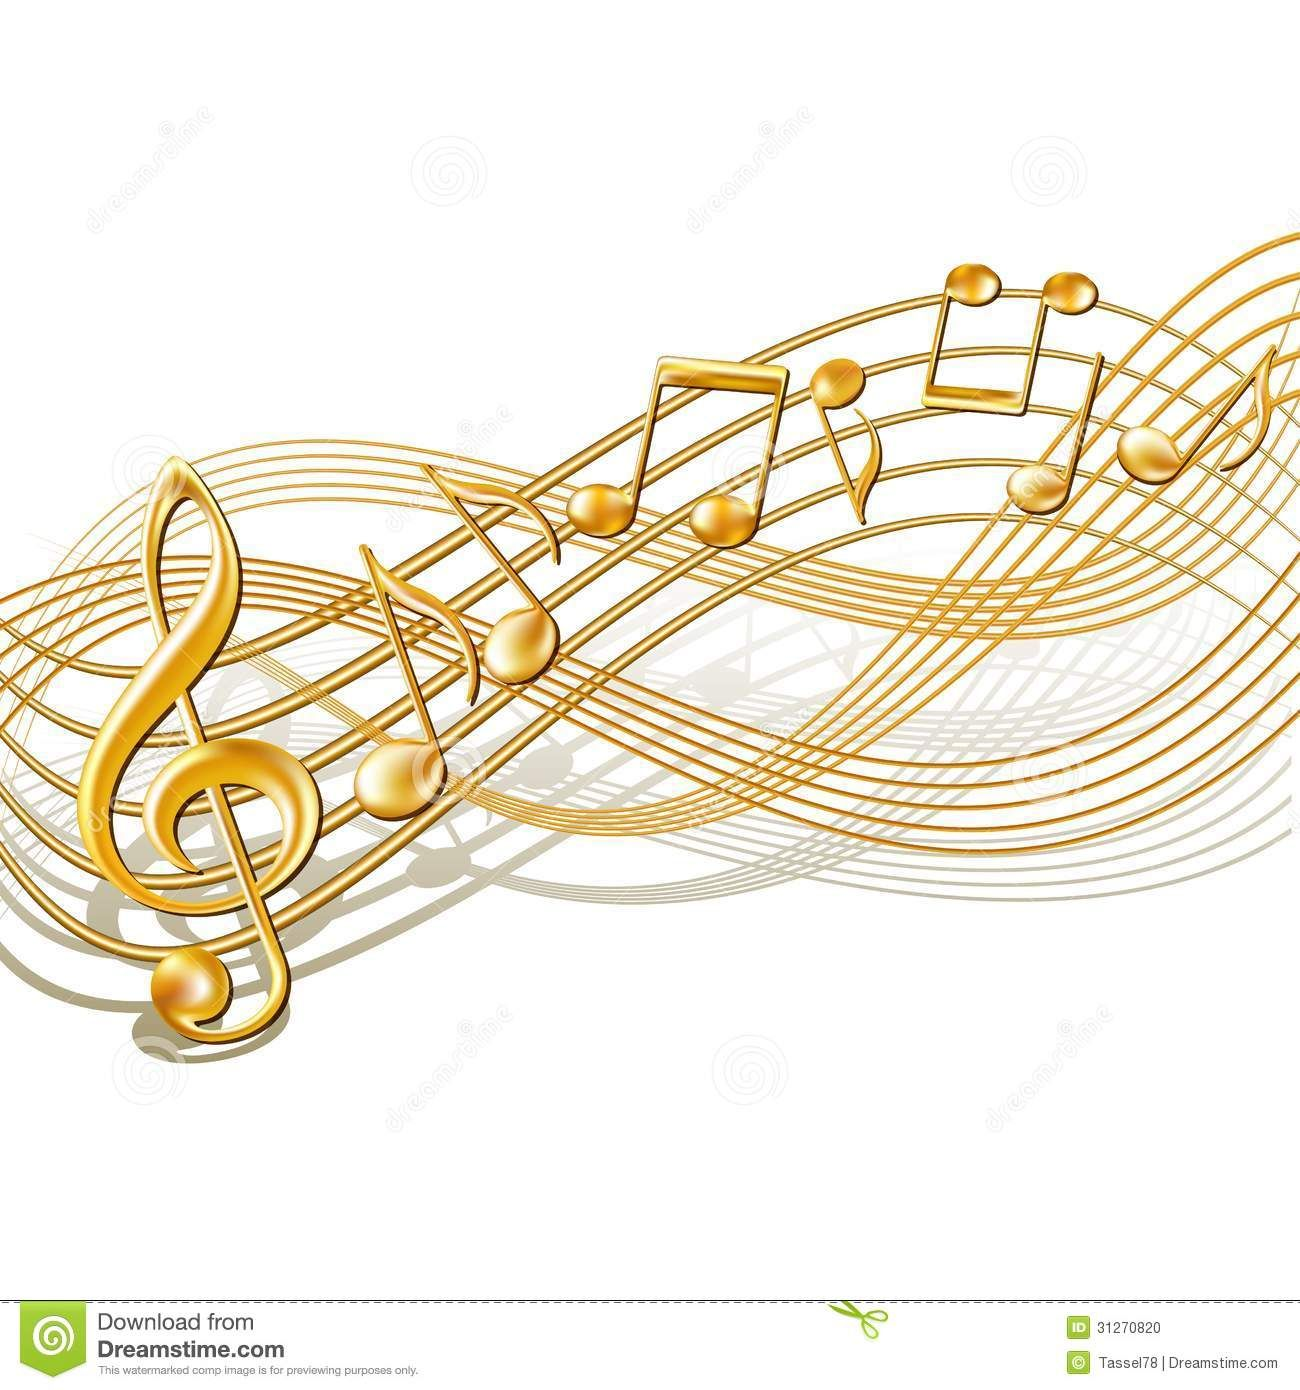 musical notes images silver gold - Google Search   MUSIC   Pinterest